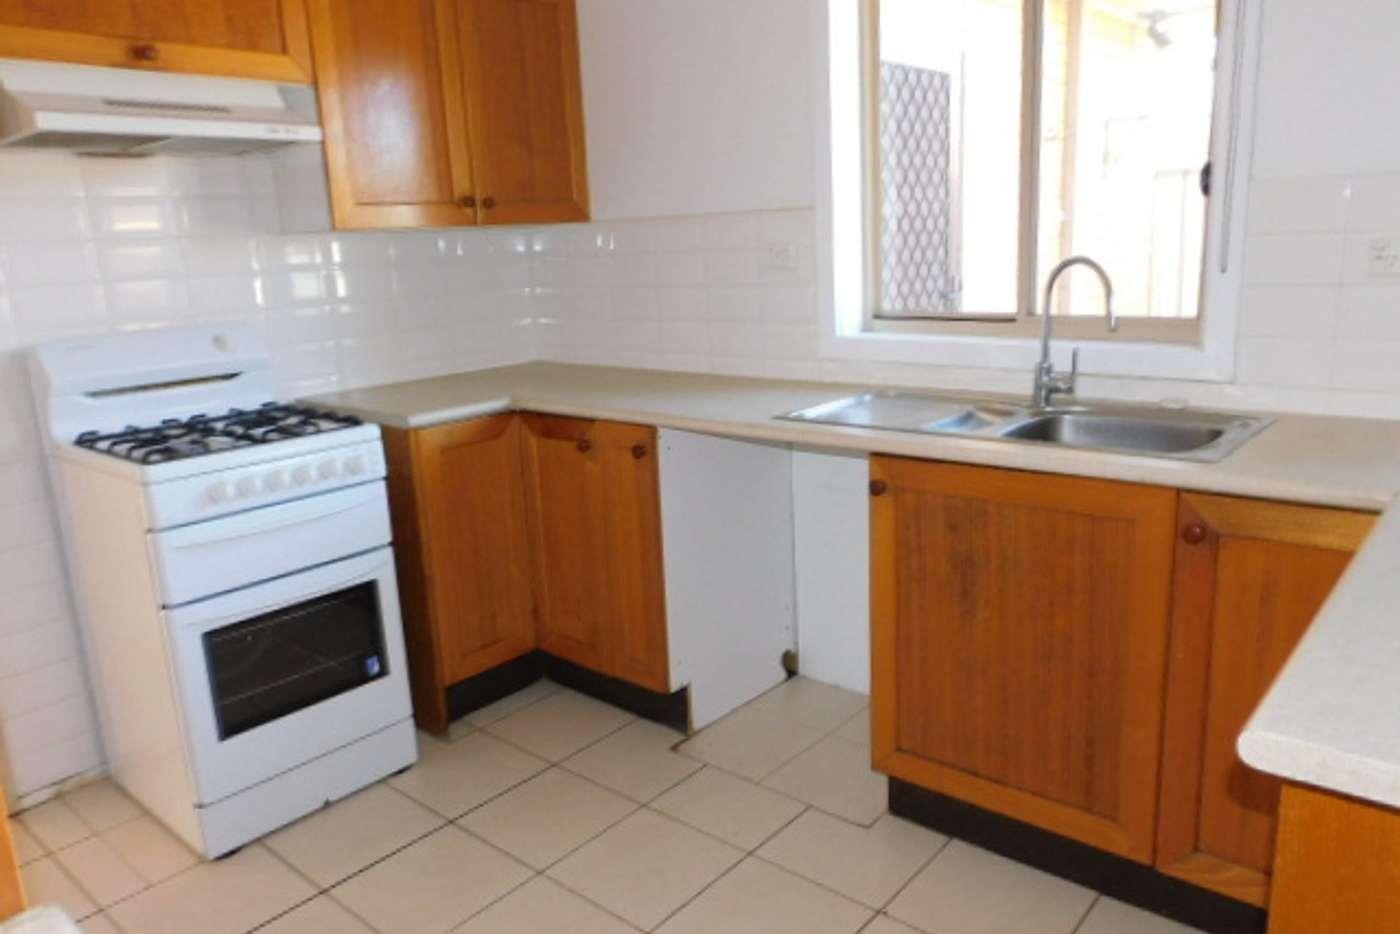 Sixth view of Homely unit listing, 132 Outlook Dr, Glenroy VIC 3046